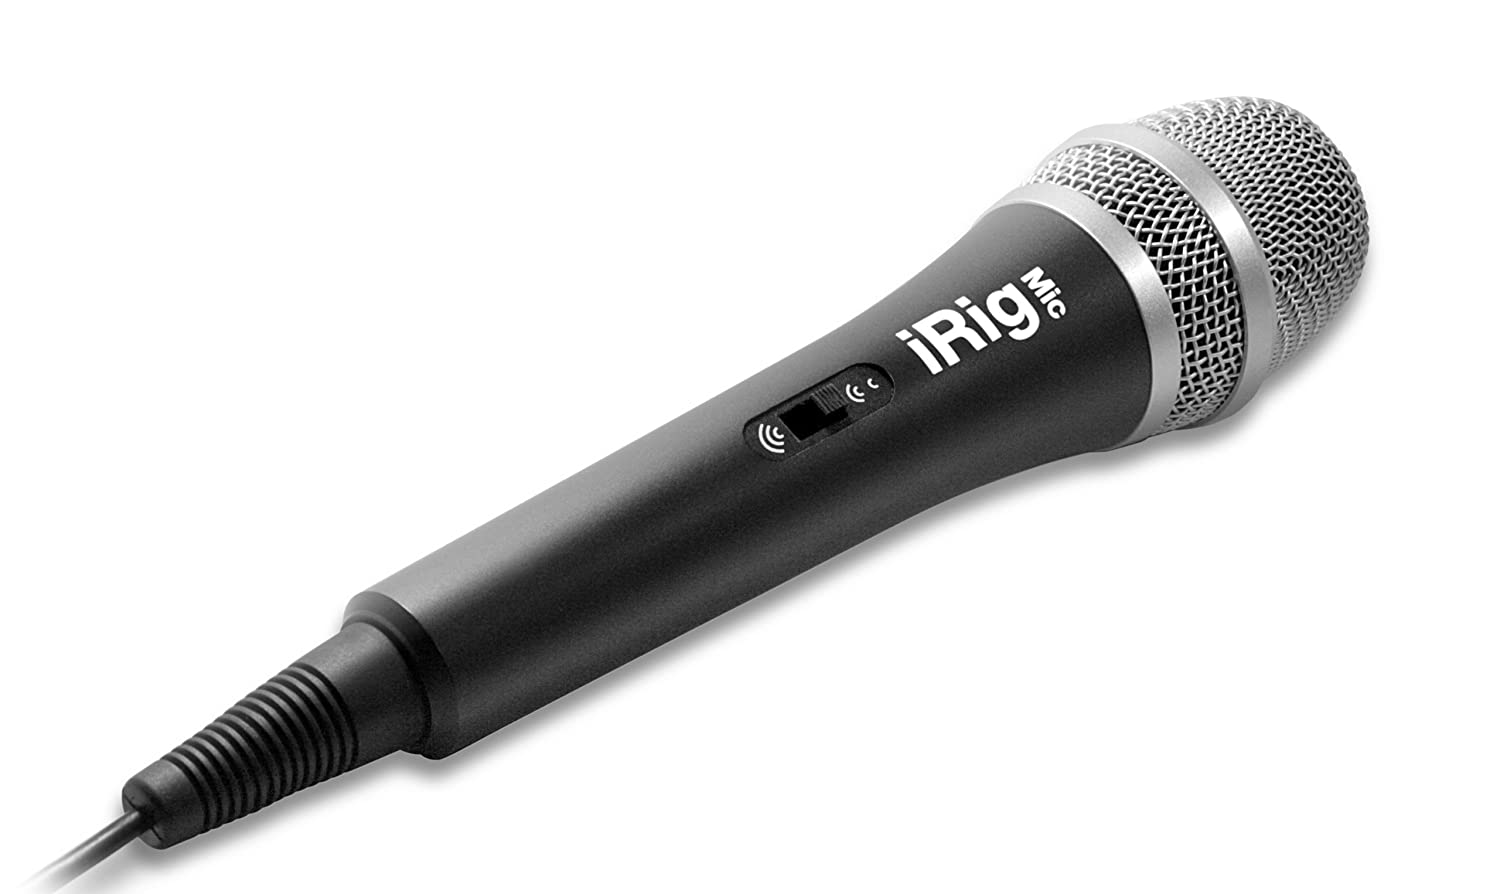 IK Multimedia iRig Mic Microfono Professionale Accessorio per iPhone/iPad/iPod/Android Touch, Nero IPIRIGMICIN BASSO CHITARRA MIXER